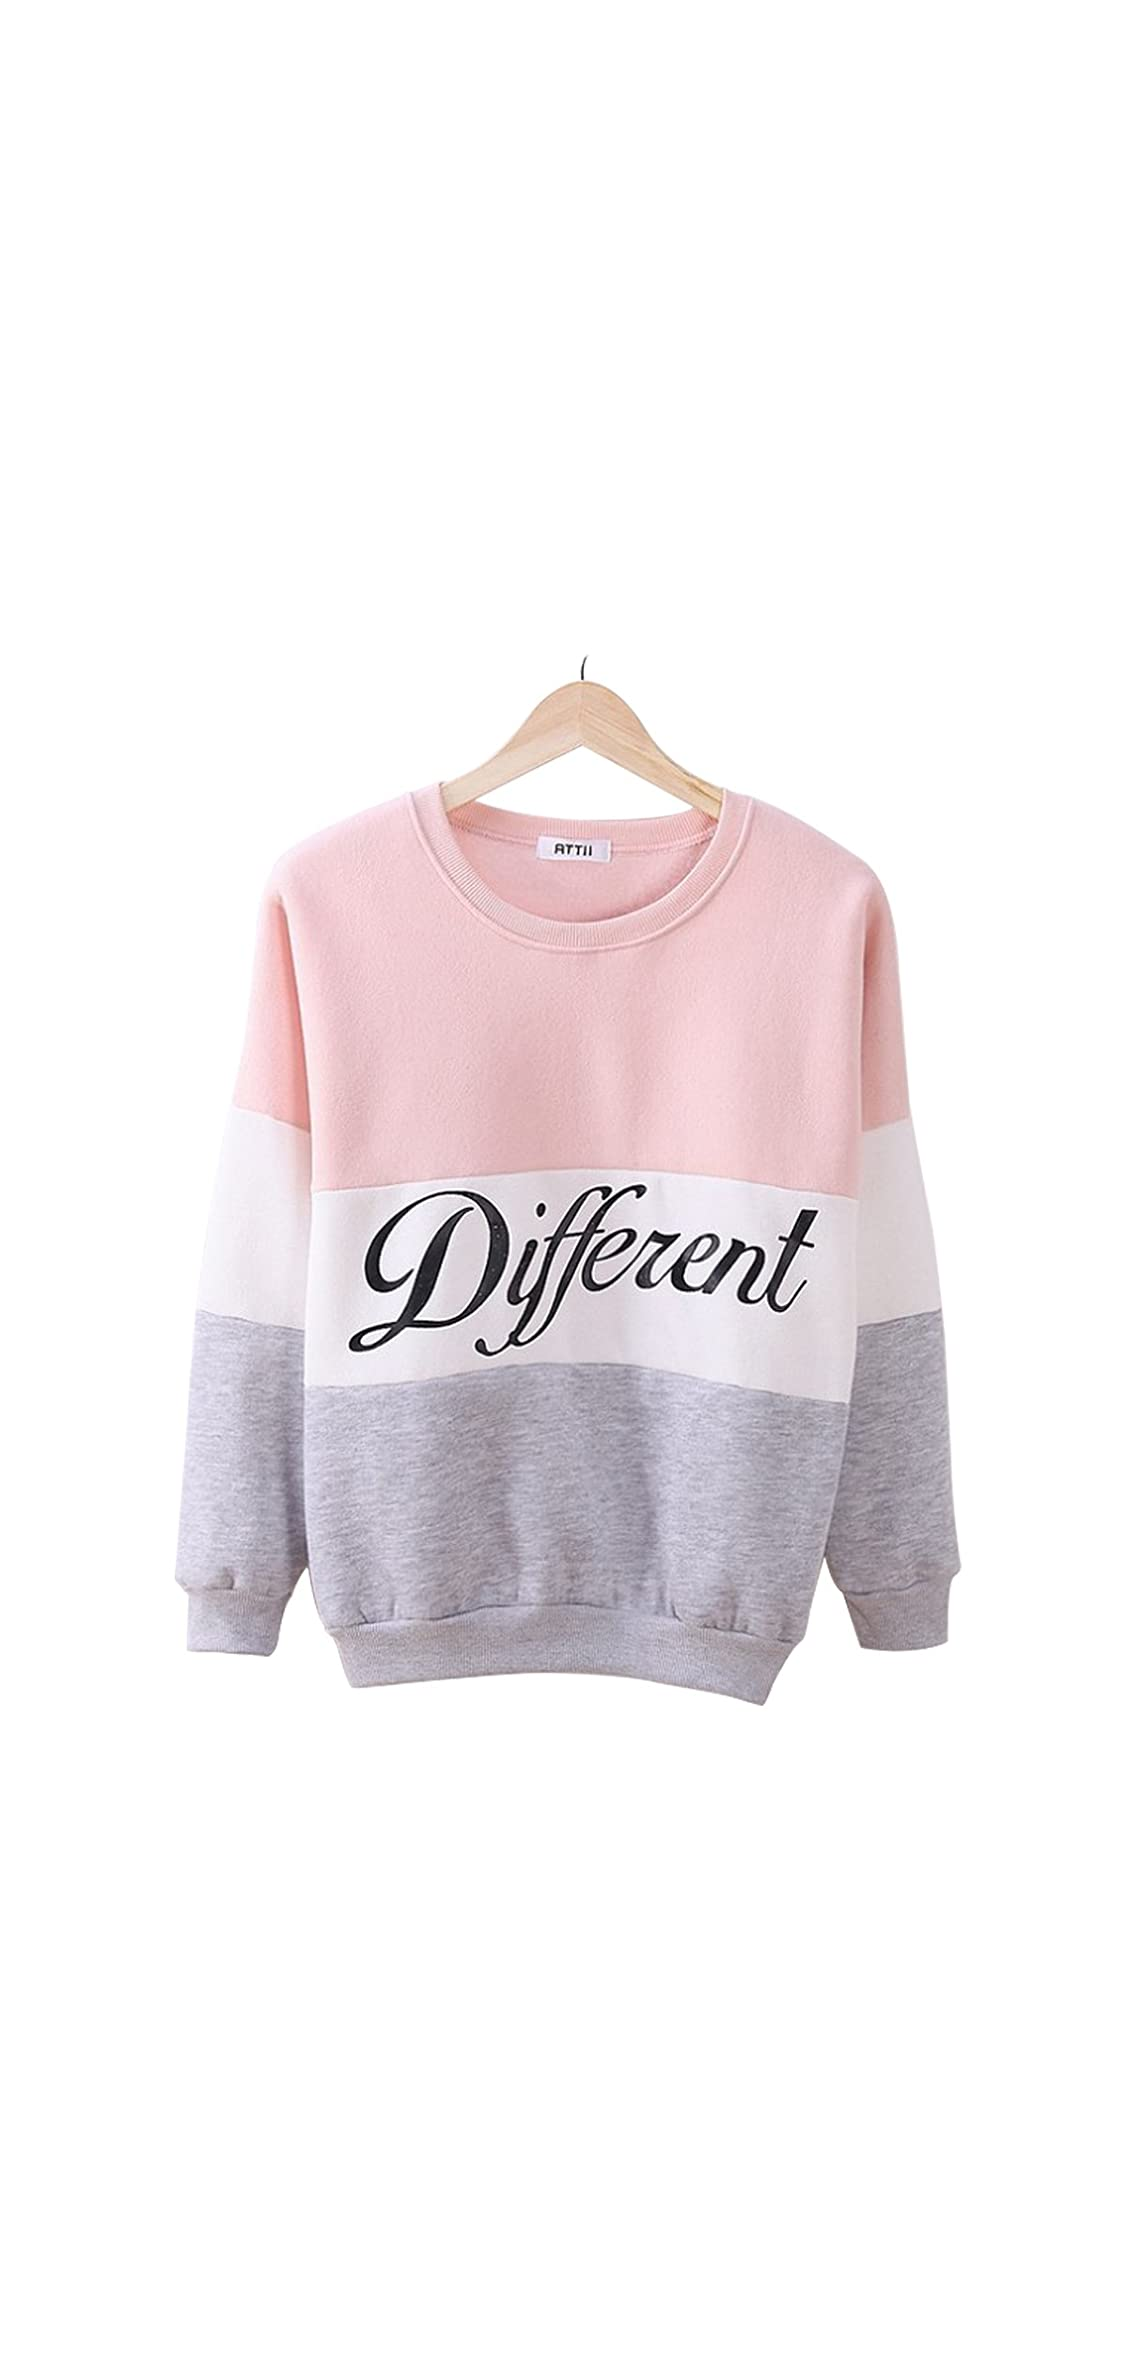 Laisiyi Thin Fleece Different Letter Printed Casual Sweater Mix